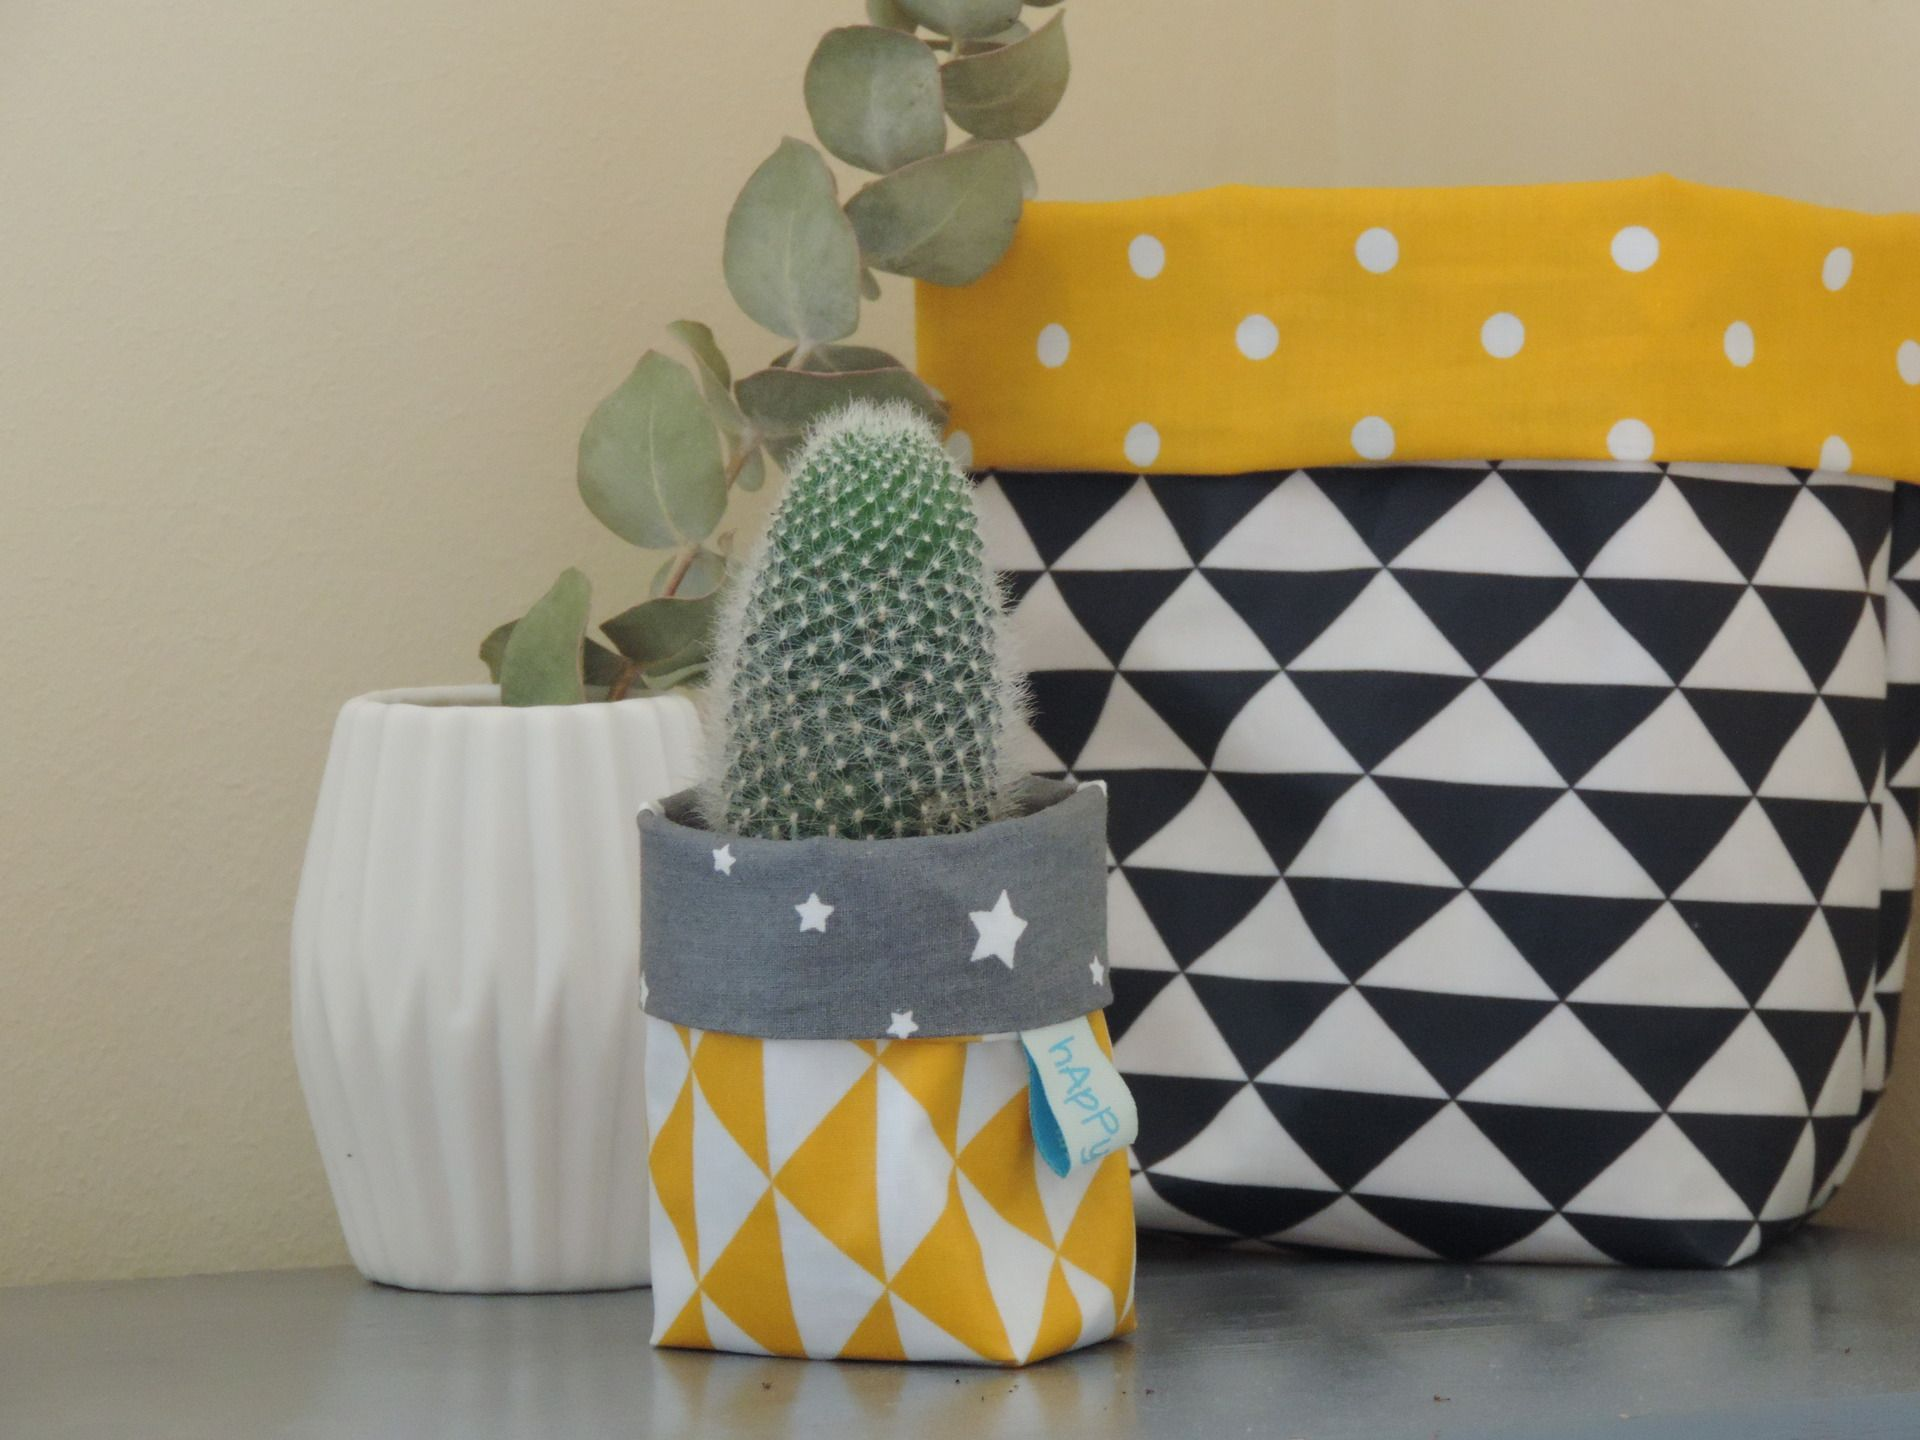 mini cache pot pour cactus en coton enduit accessoires de maison par happyaime style. Black Bedroom Furniture Sets. Home Design Ideas